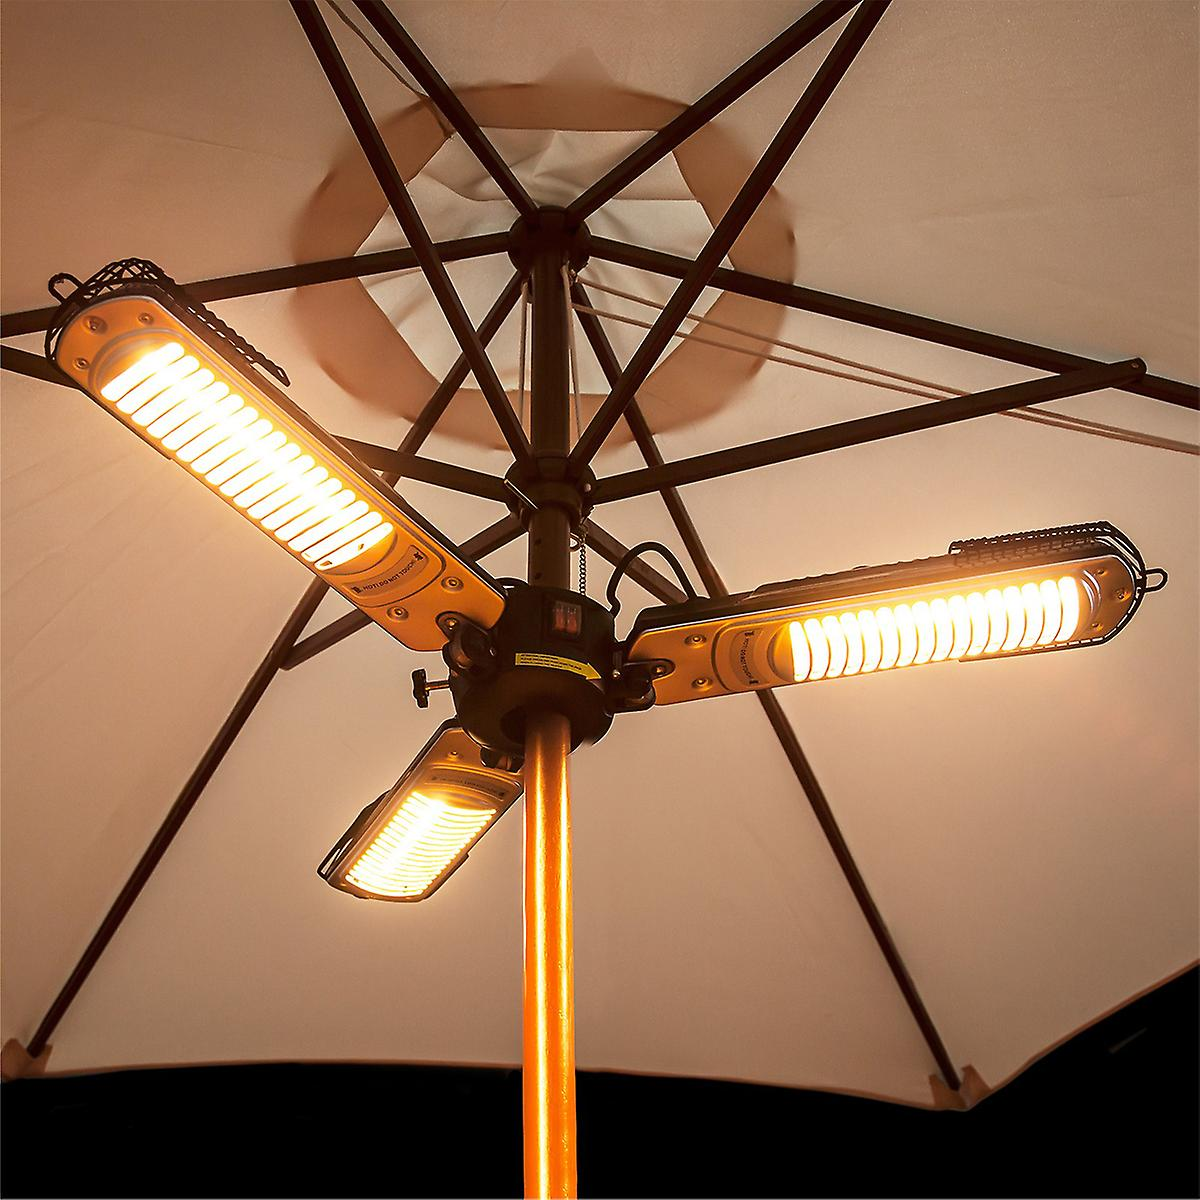 Charles Bentley 2000W Parasol Mounted Electric Patio Heater